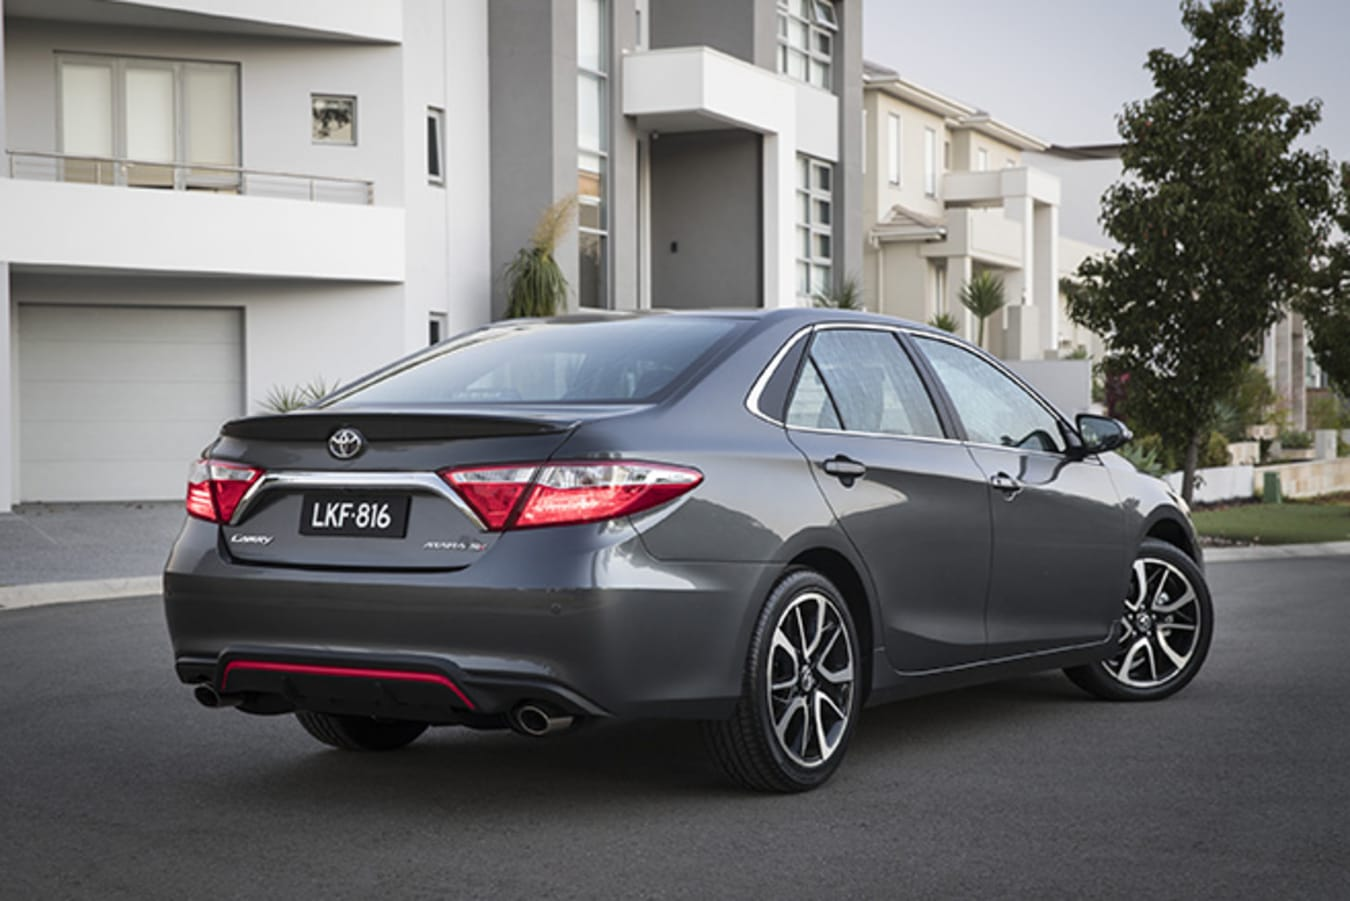 Toyota Camry rear side